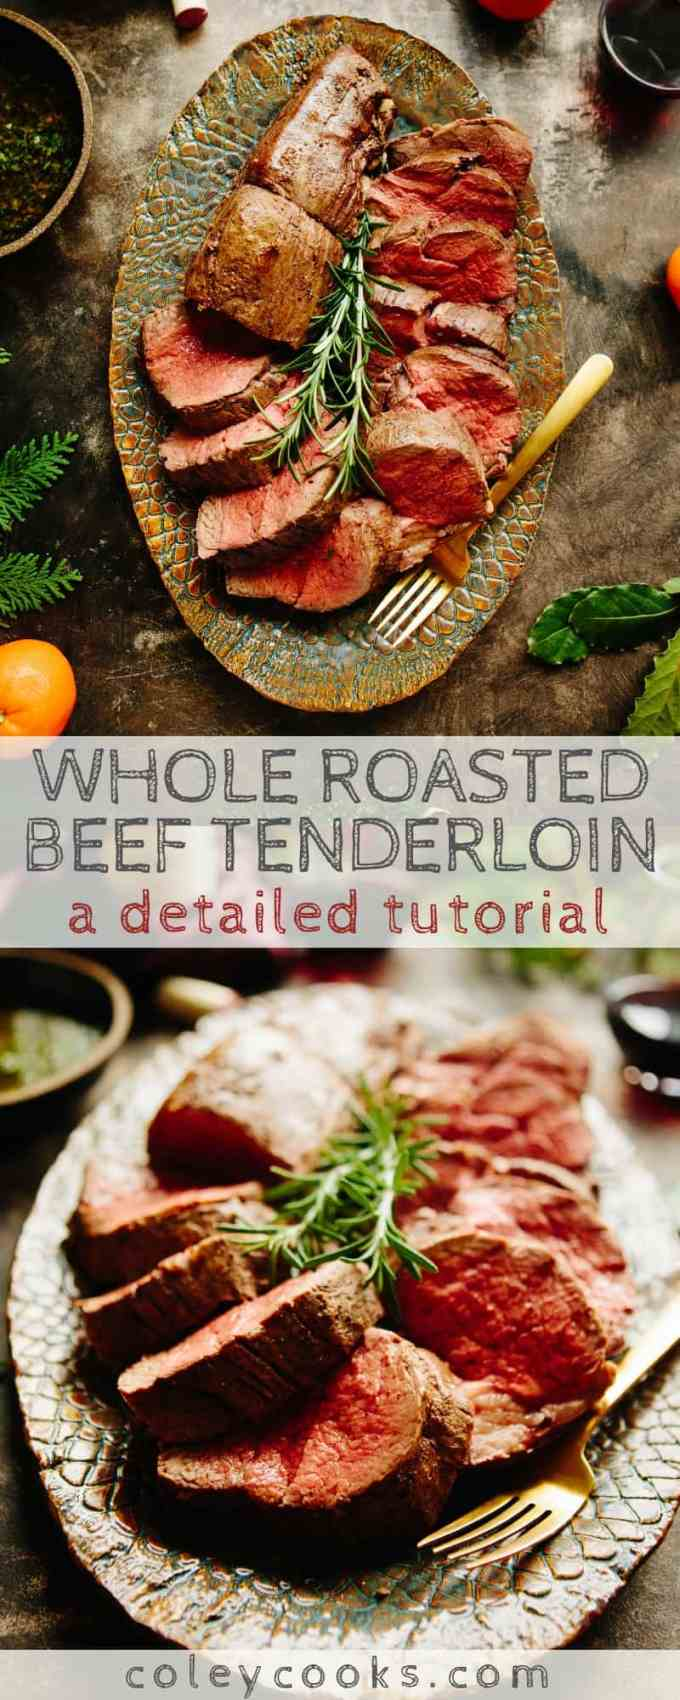 This is a detailed tutorial on how to roast a whole beef tenderloin (filet mignon). Perfect for holiday entertaining! #meat #beef #filet #roasted #tenderloin #easy #recipe | ColeyCooks.com